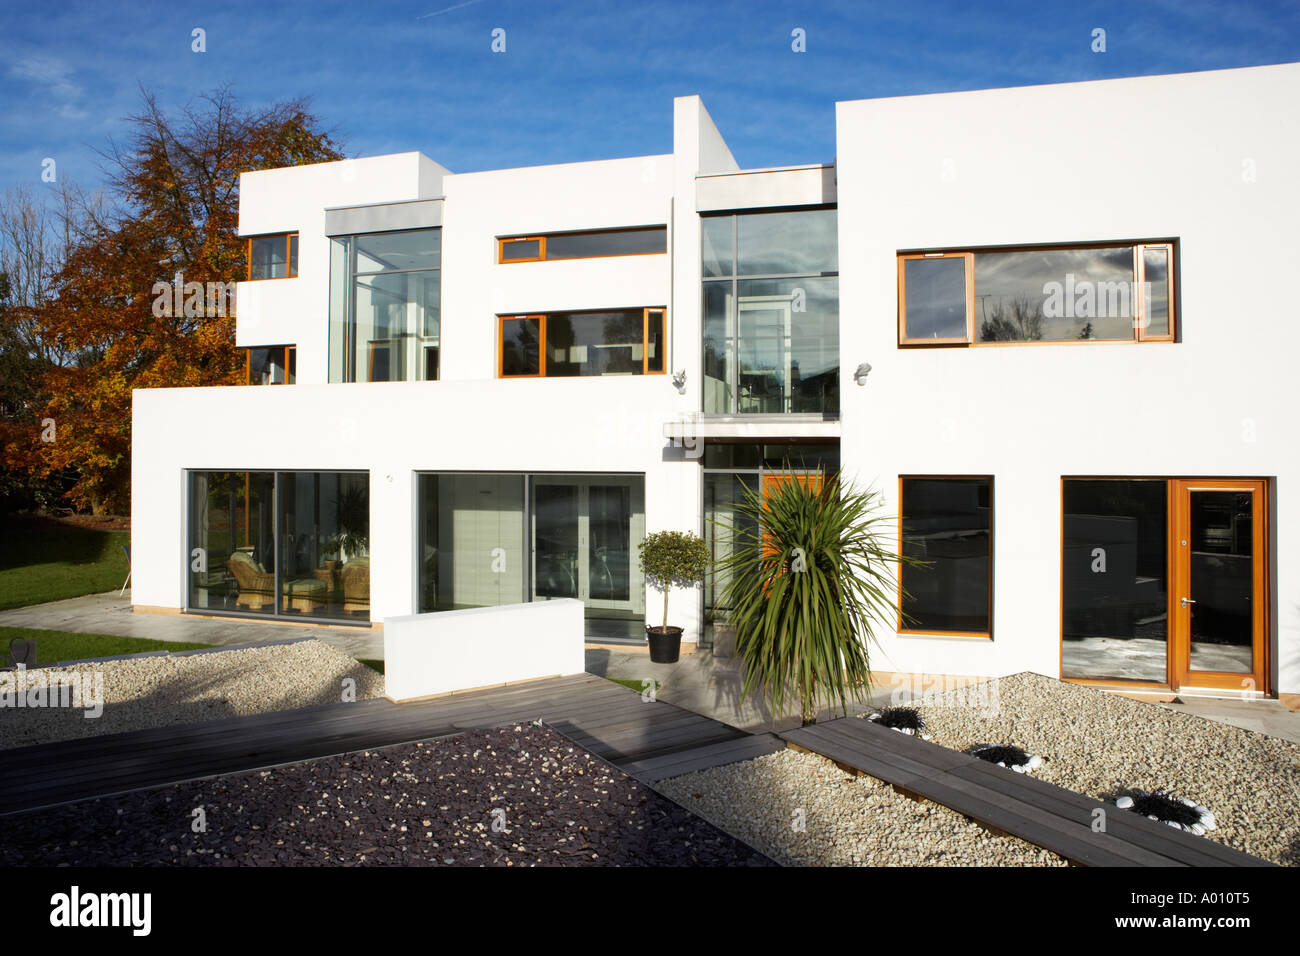 Modern Art Deco Style House With White Gravel Garden And Large Patio